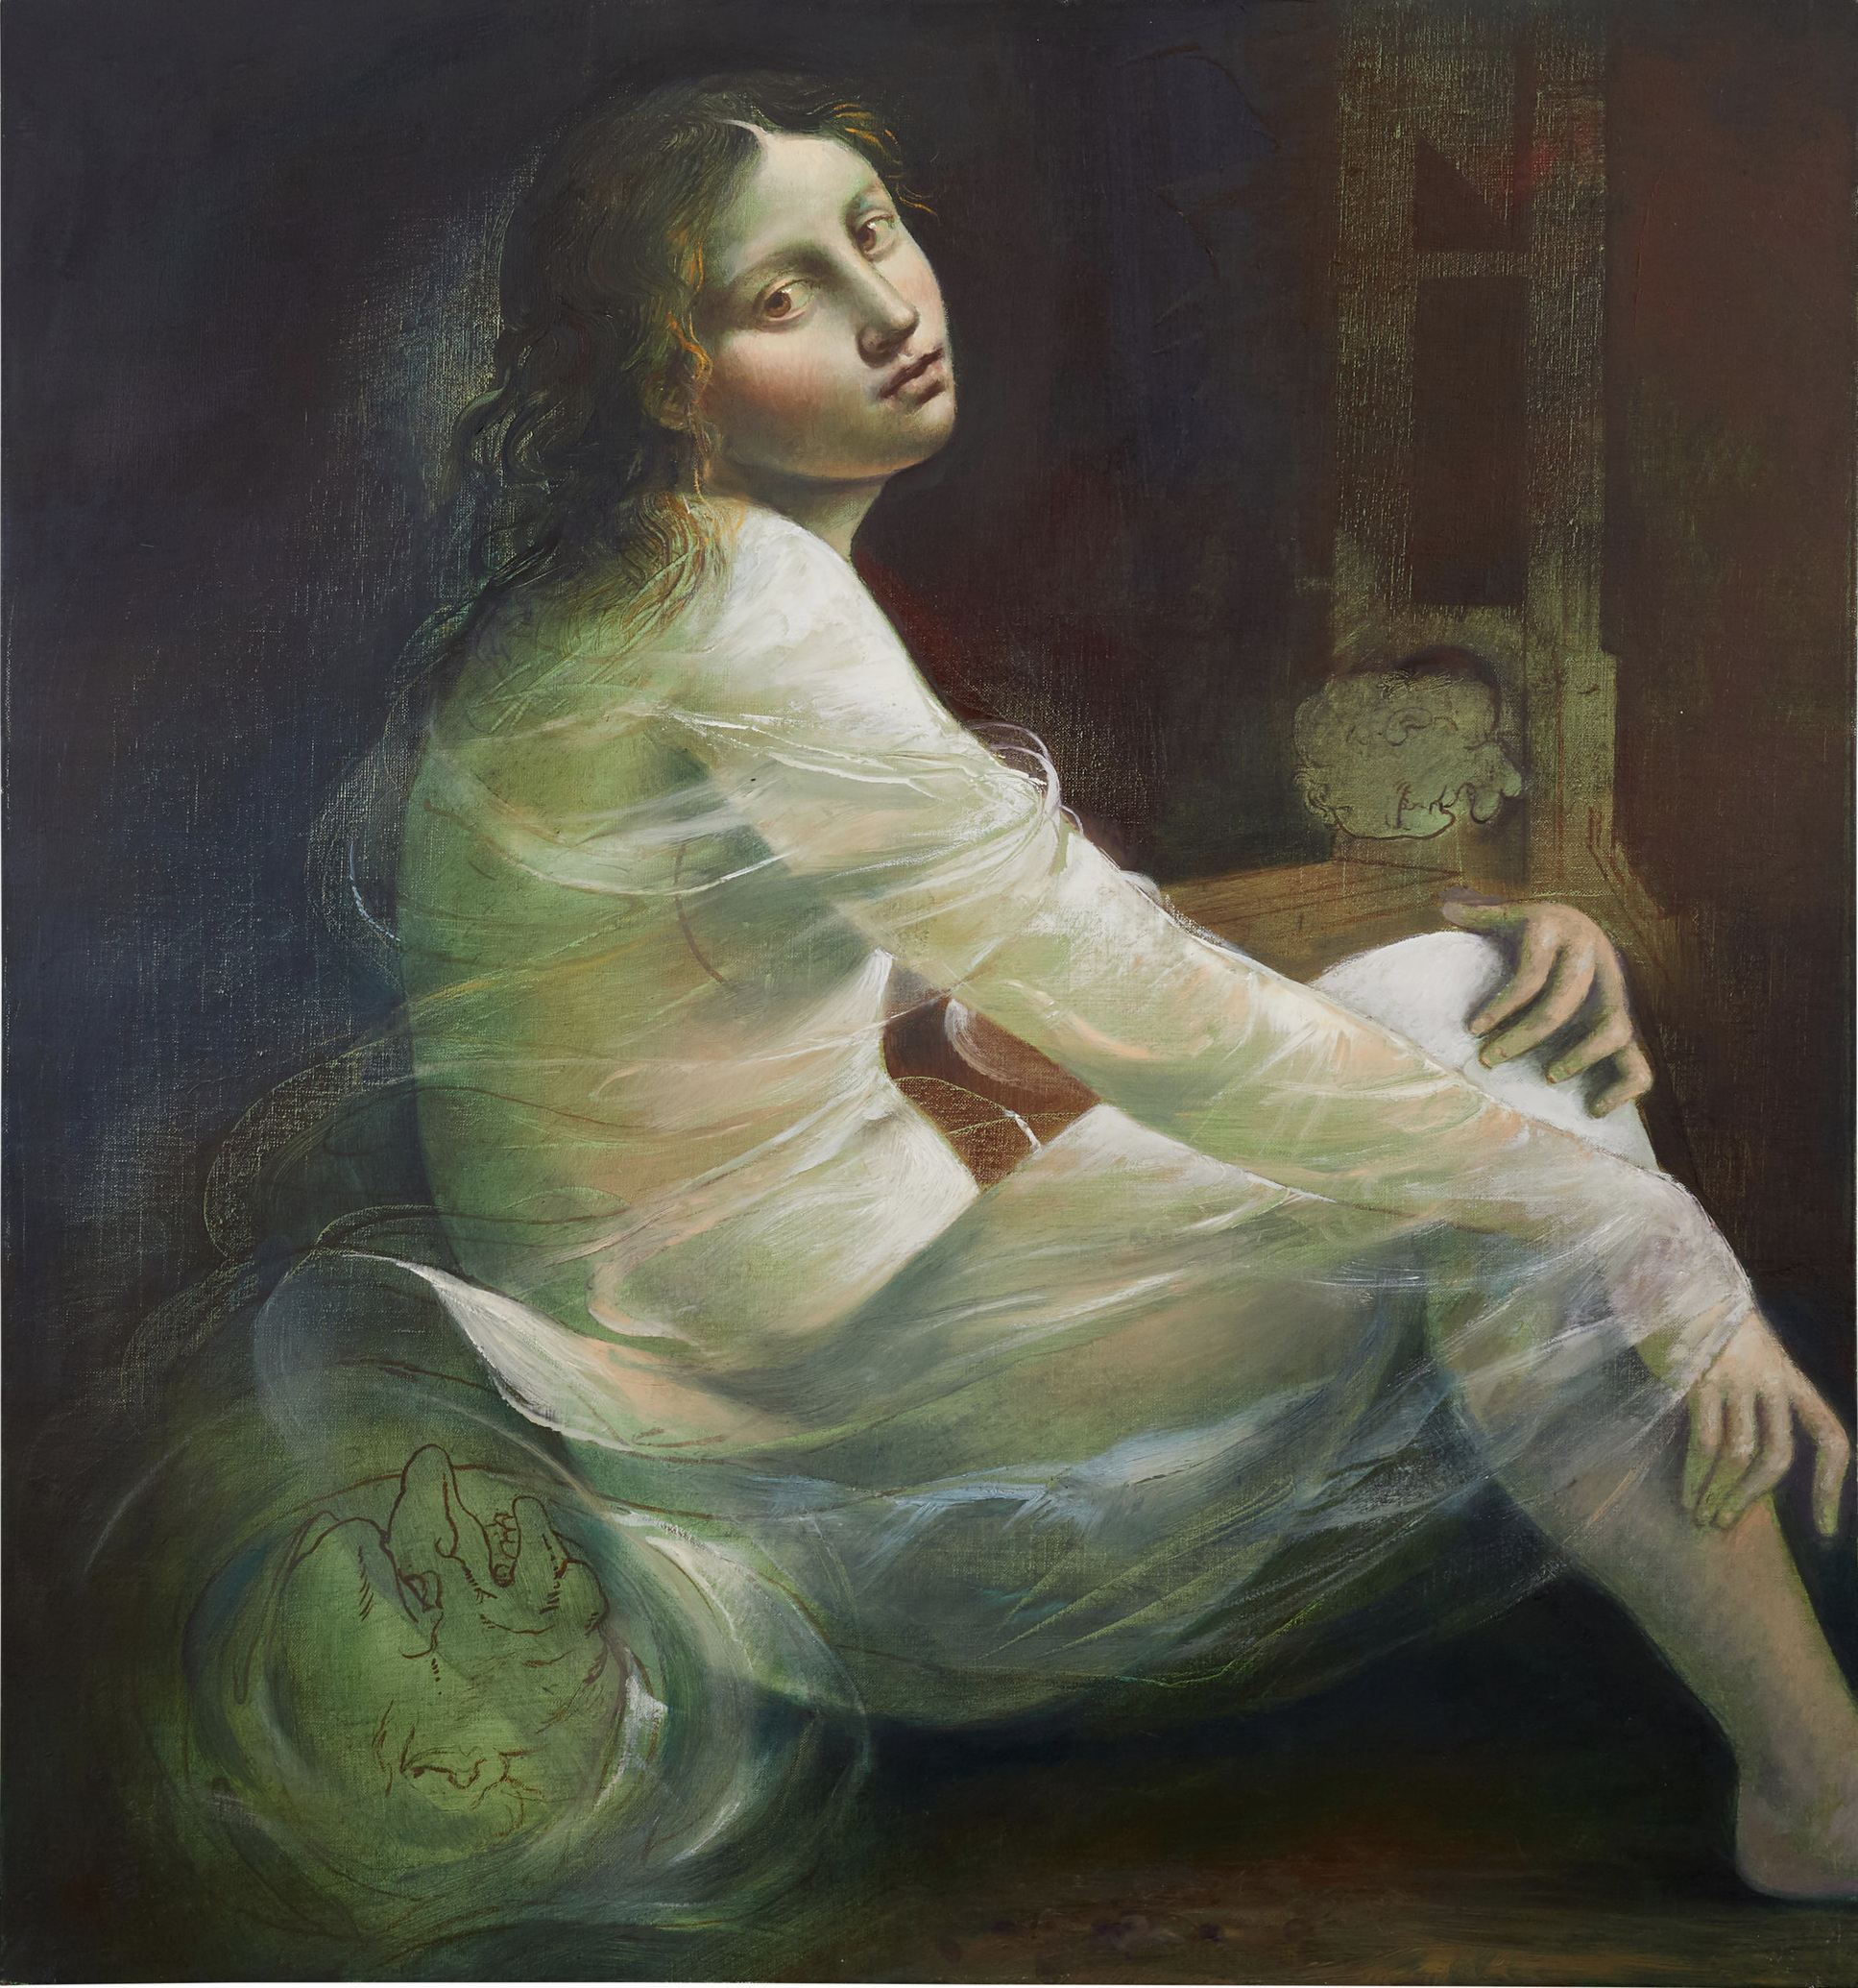 Rescousse, 2011. Oil on canvas, 66 x 61 cm. New York, Collection of the Artist and Carol Lane, inv.no. 773.2011.P.jpg